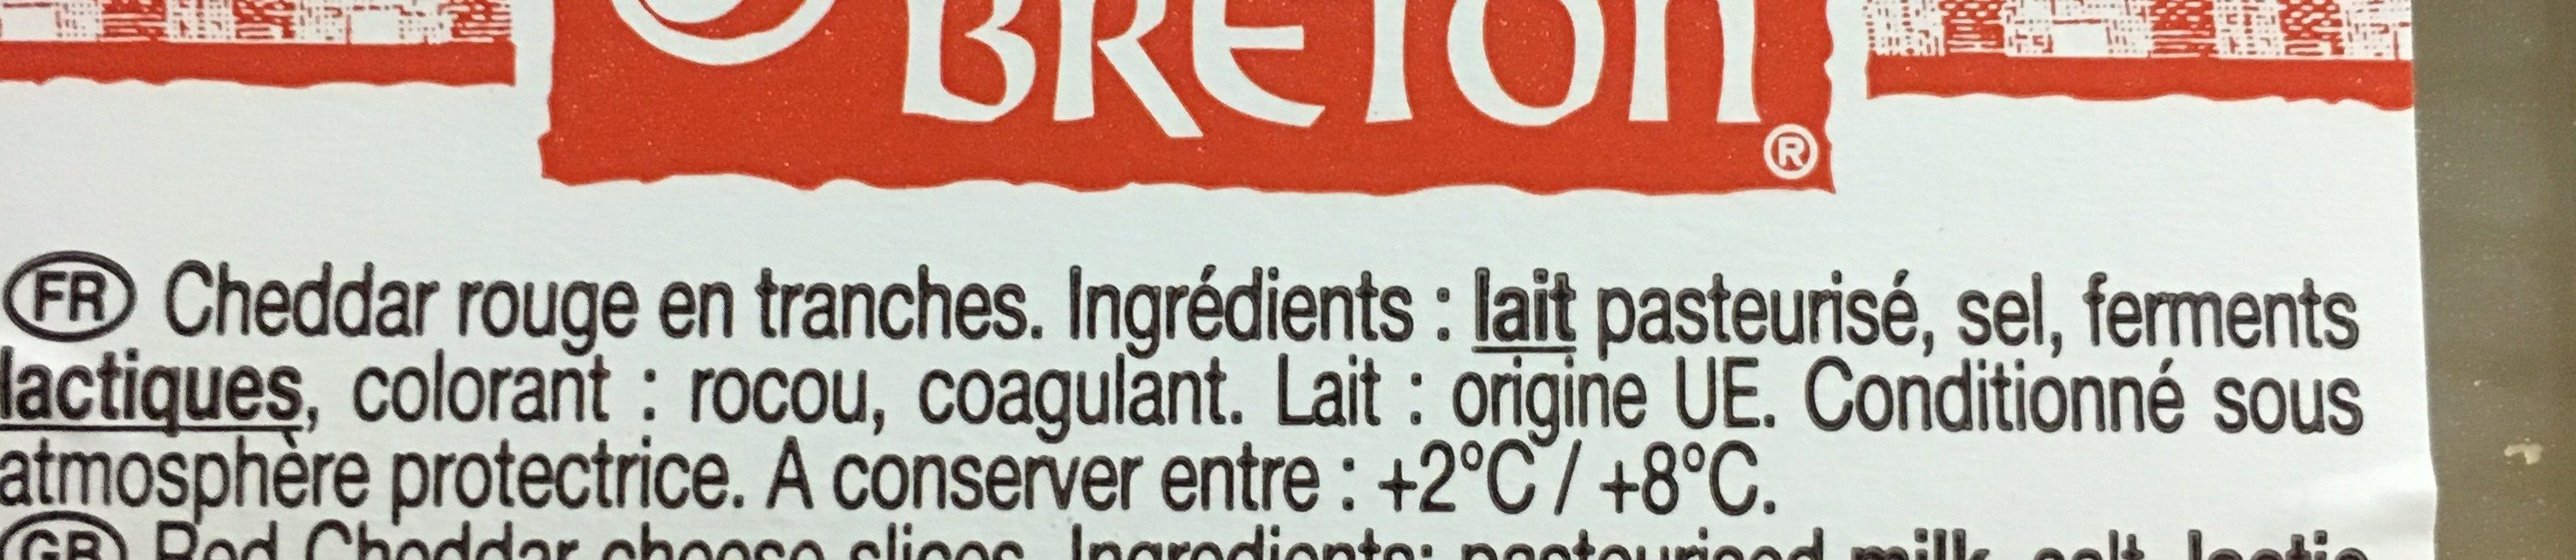 Le Cheddar - Ingredients - fr